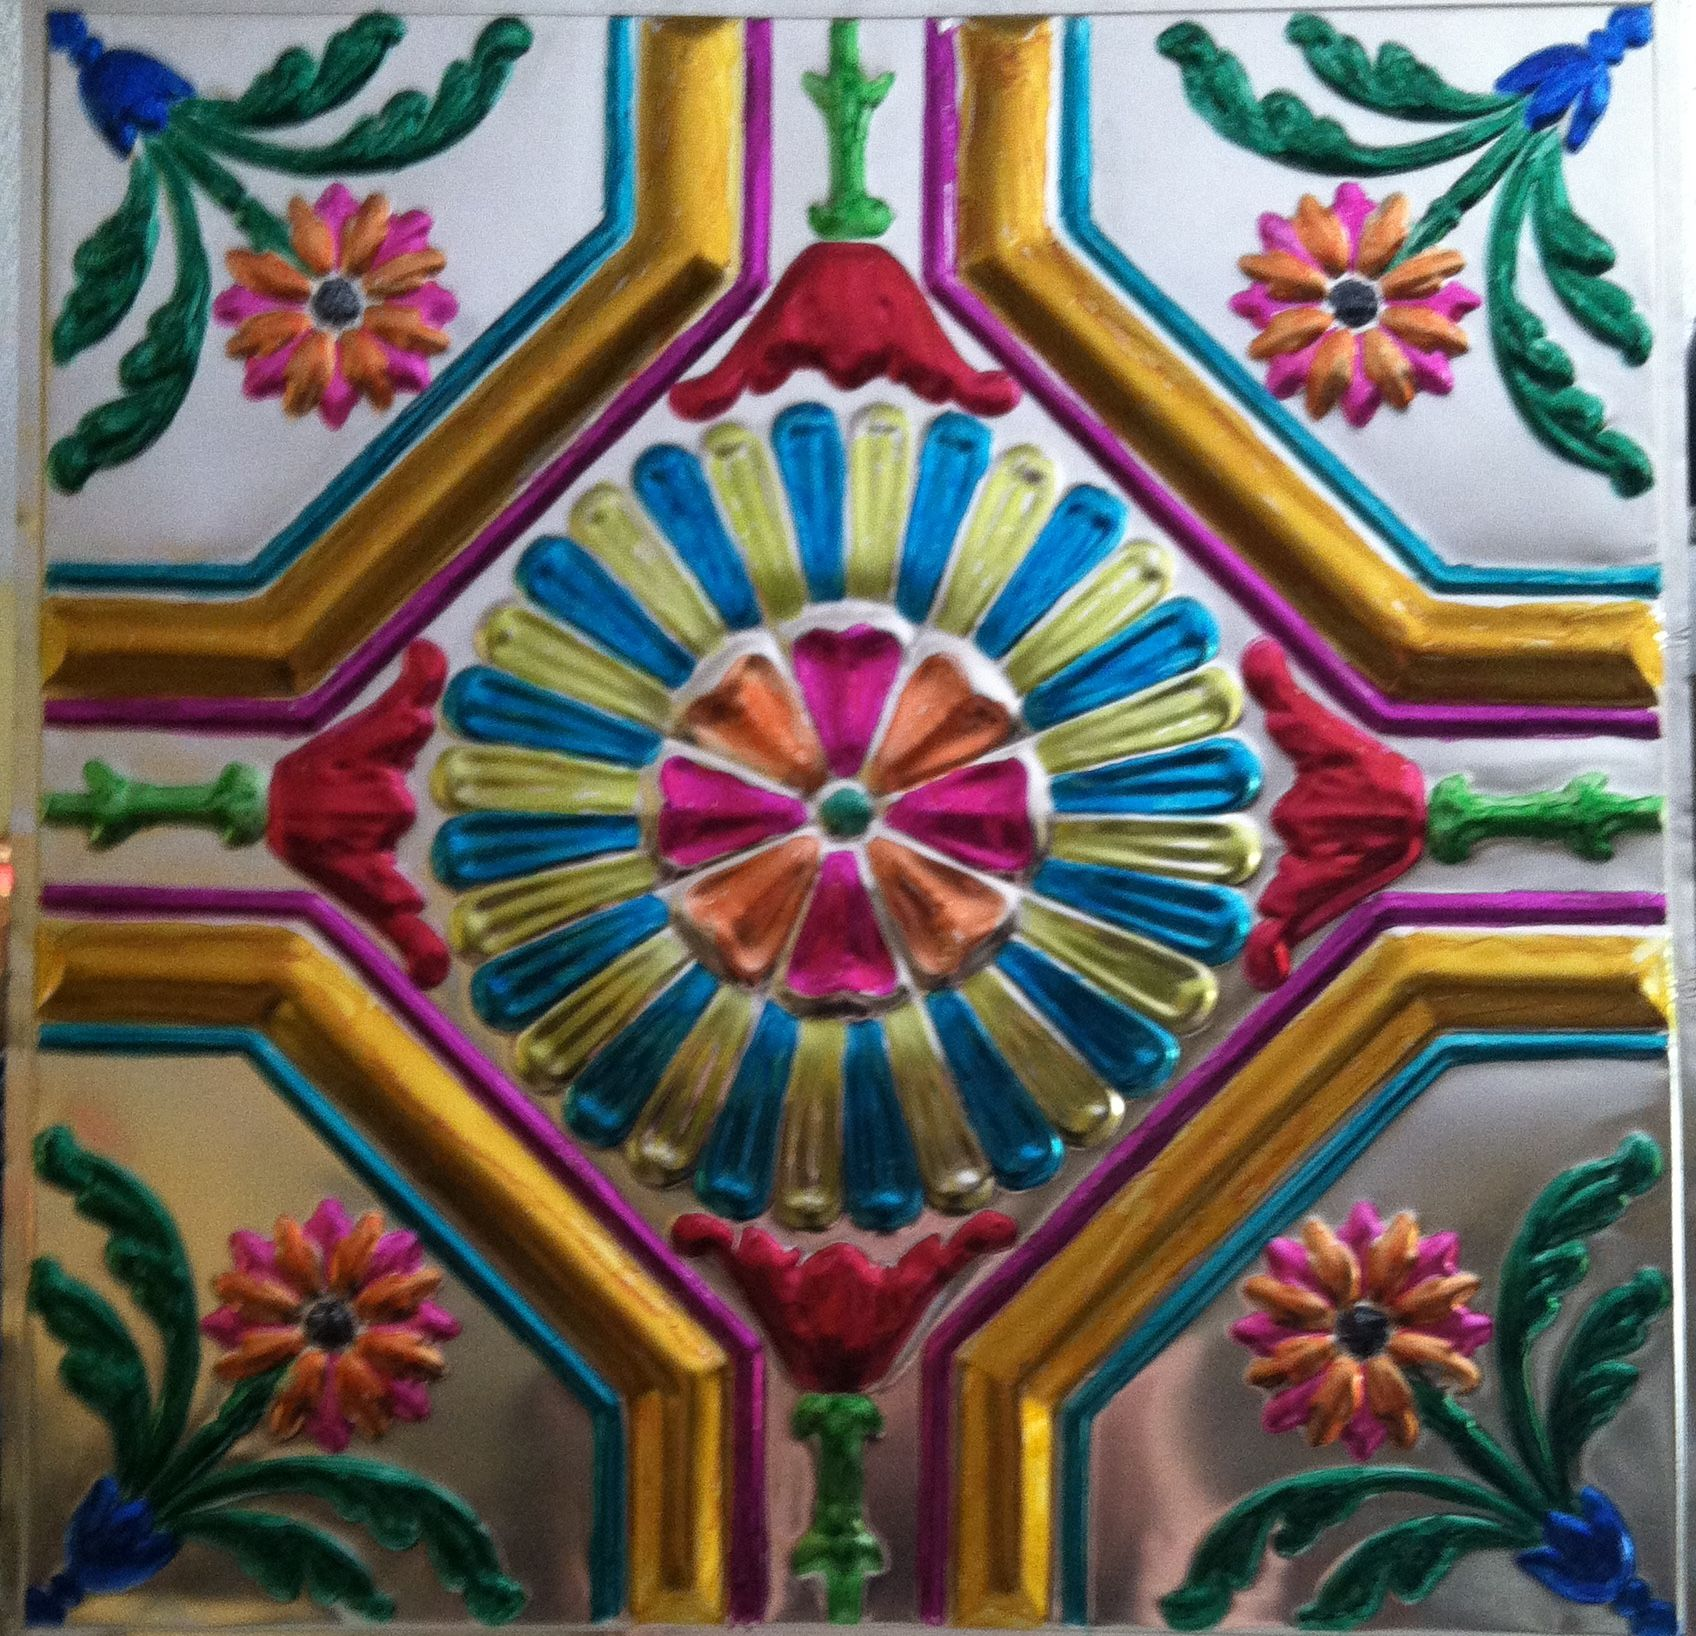 Painted tin ceiling tiles with alcohol inks dia de los muertos painted tin ceiling tiles with alcohol inks dailygadgetfo Image collections